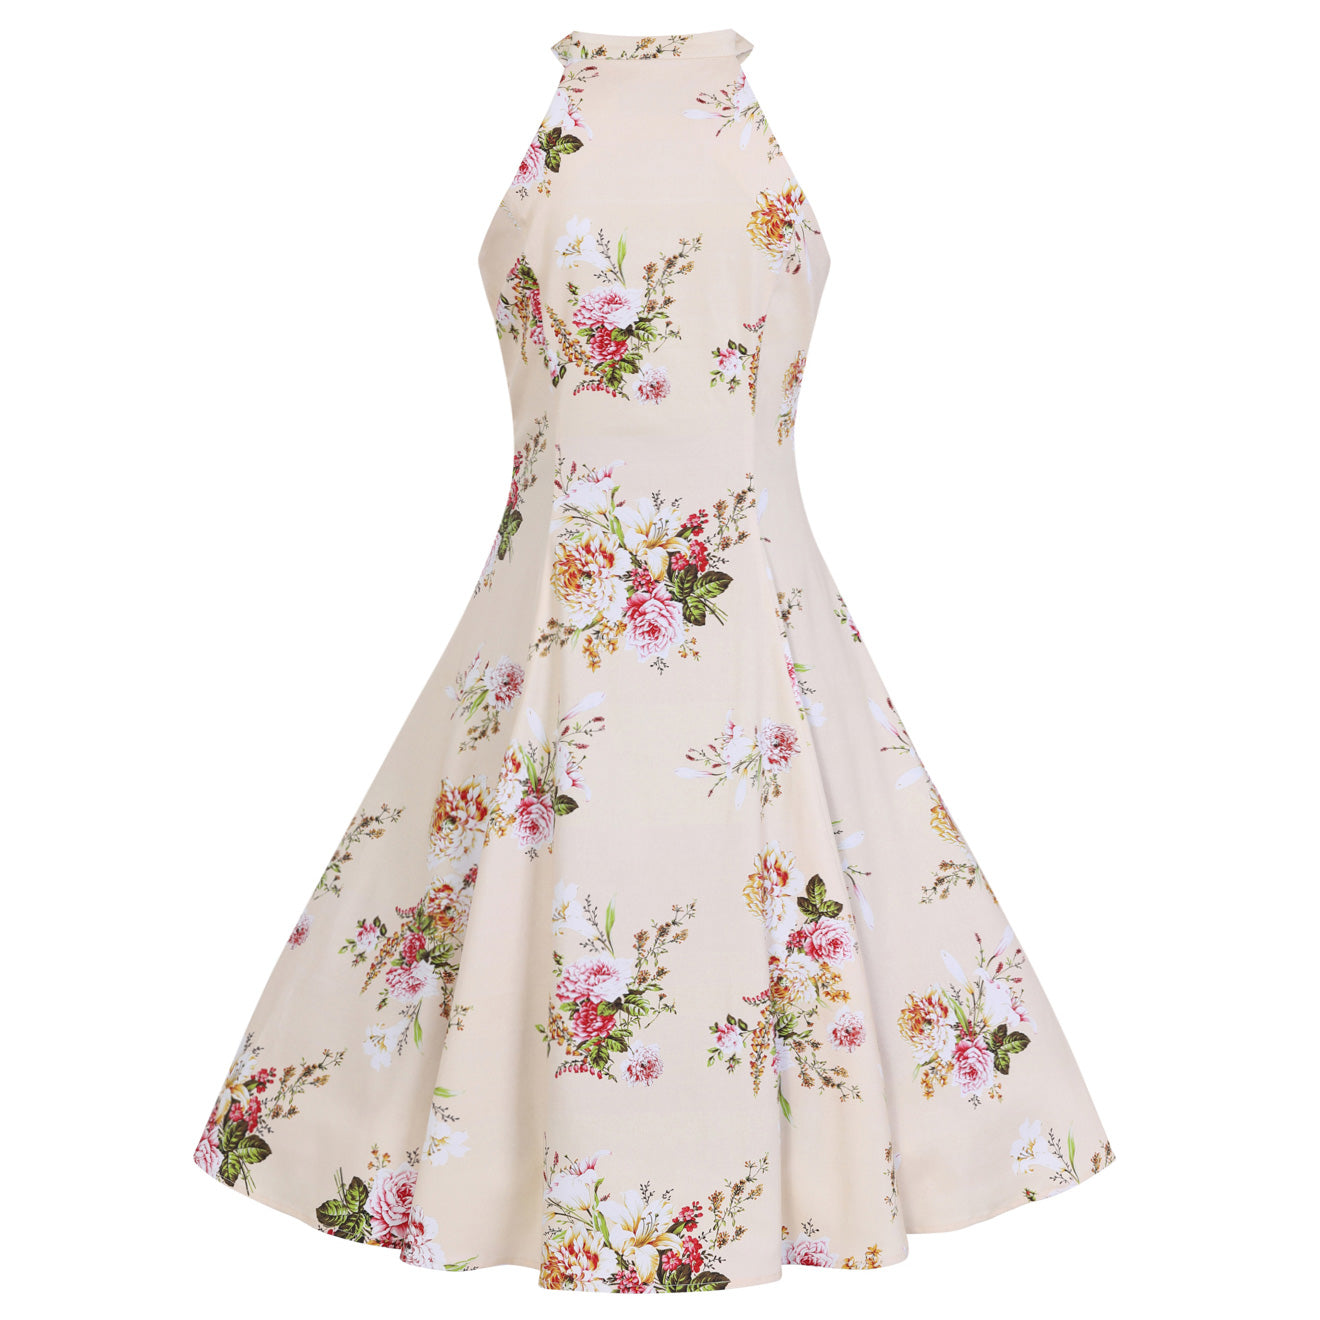 Cream And Floral Print Halter Neck 50s Swing Dress - Pretty Kitty ...